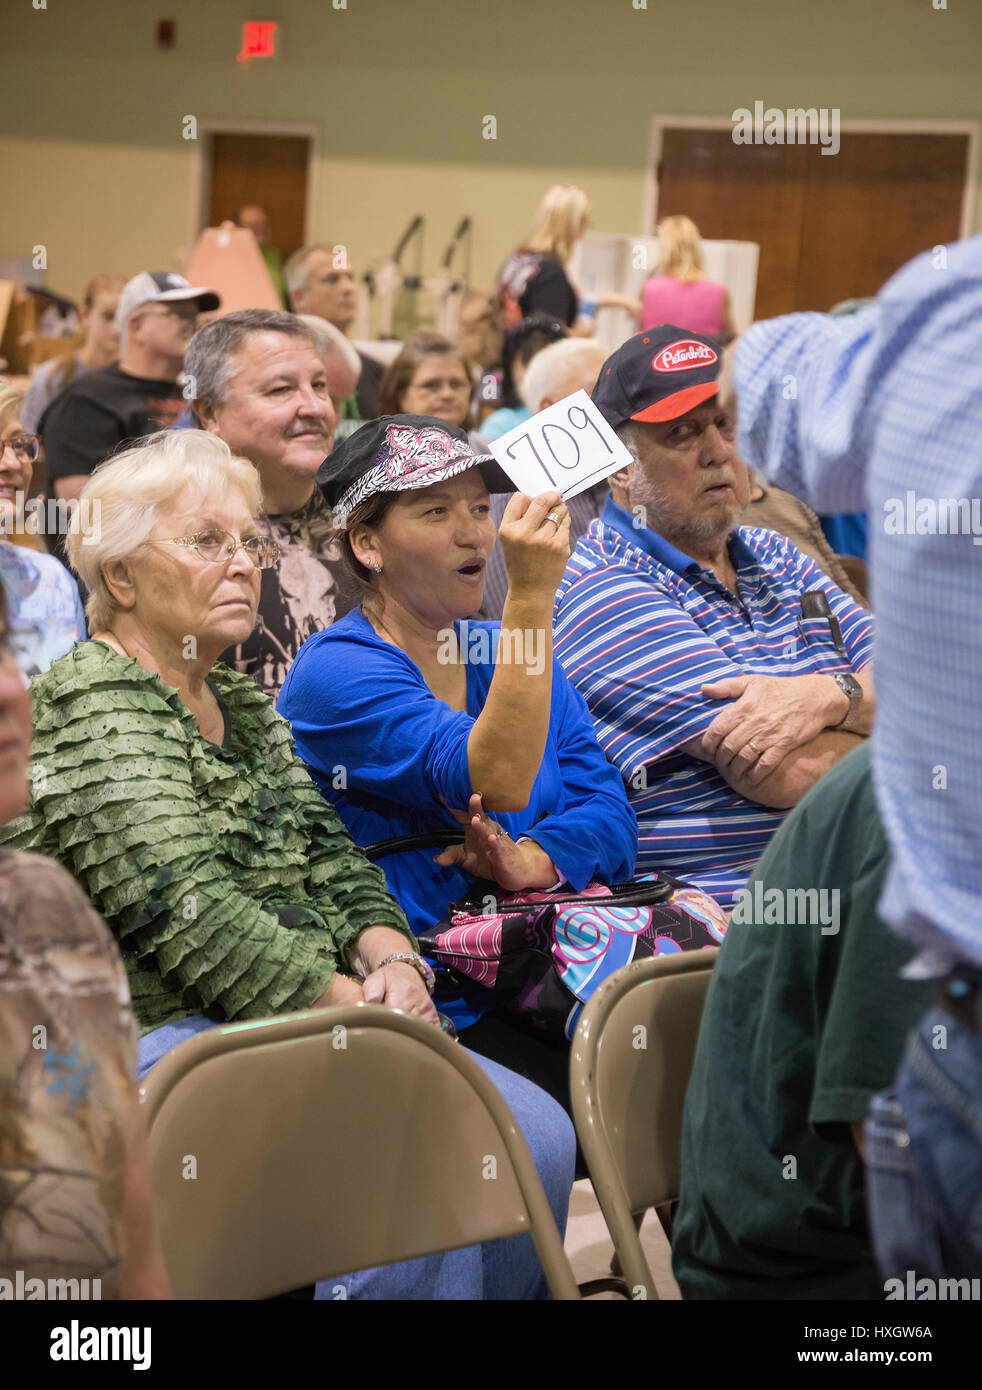 Auction at First Baptist Church, High Springs, Florida. - Stock Image